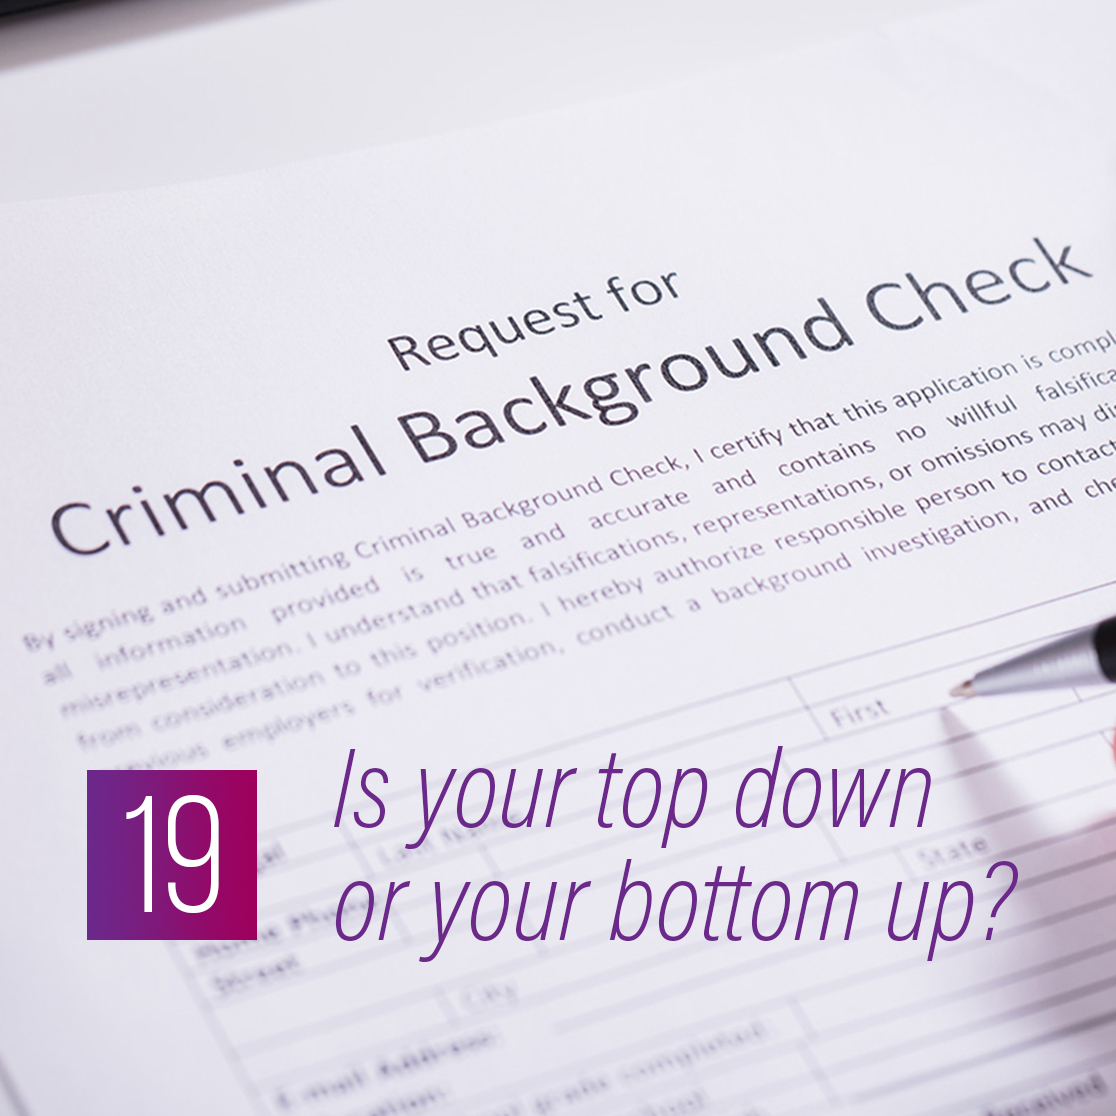 019 - Is your top down or your bottom up?